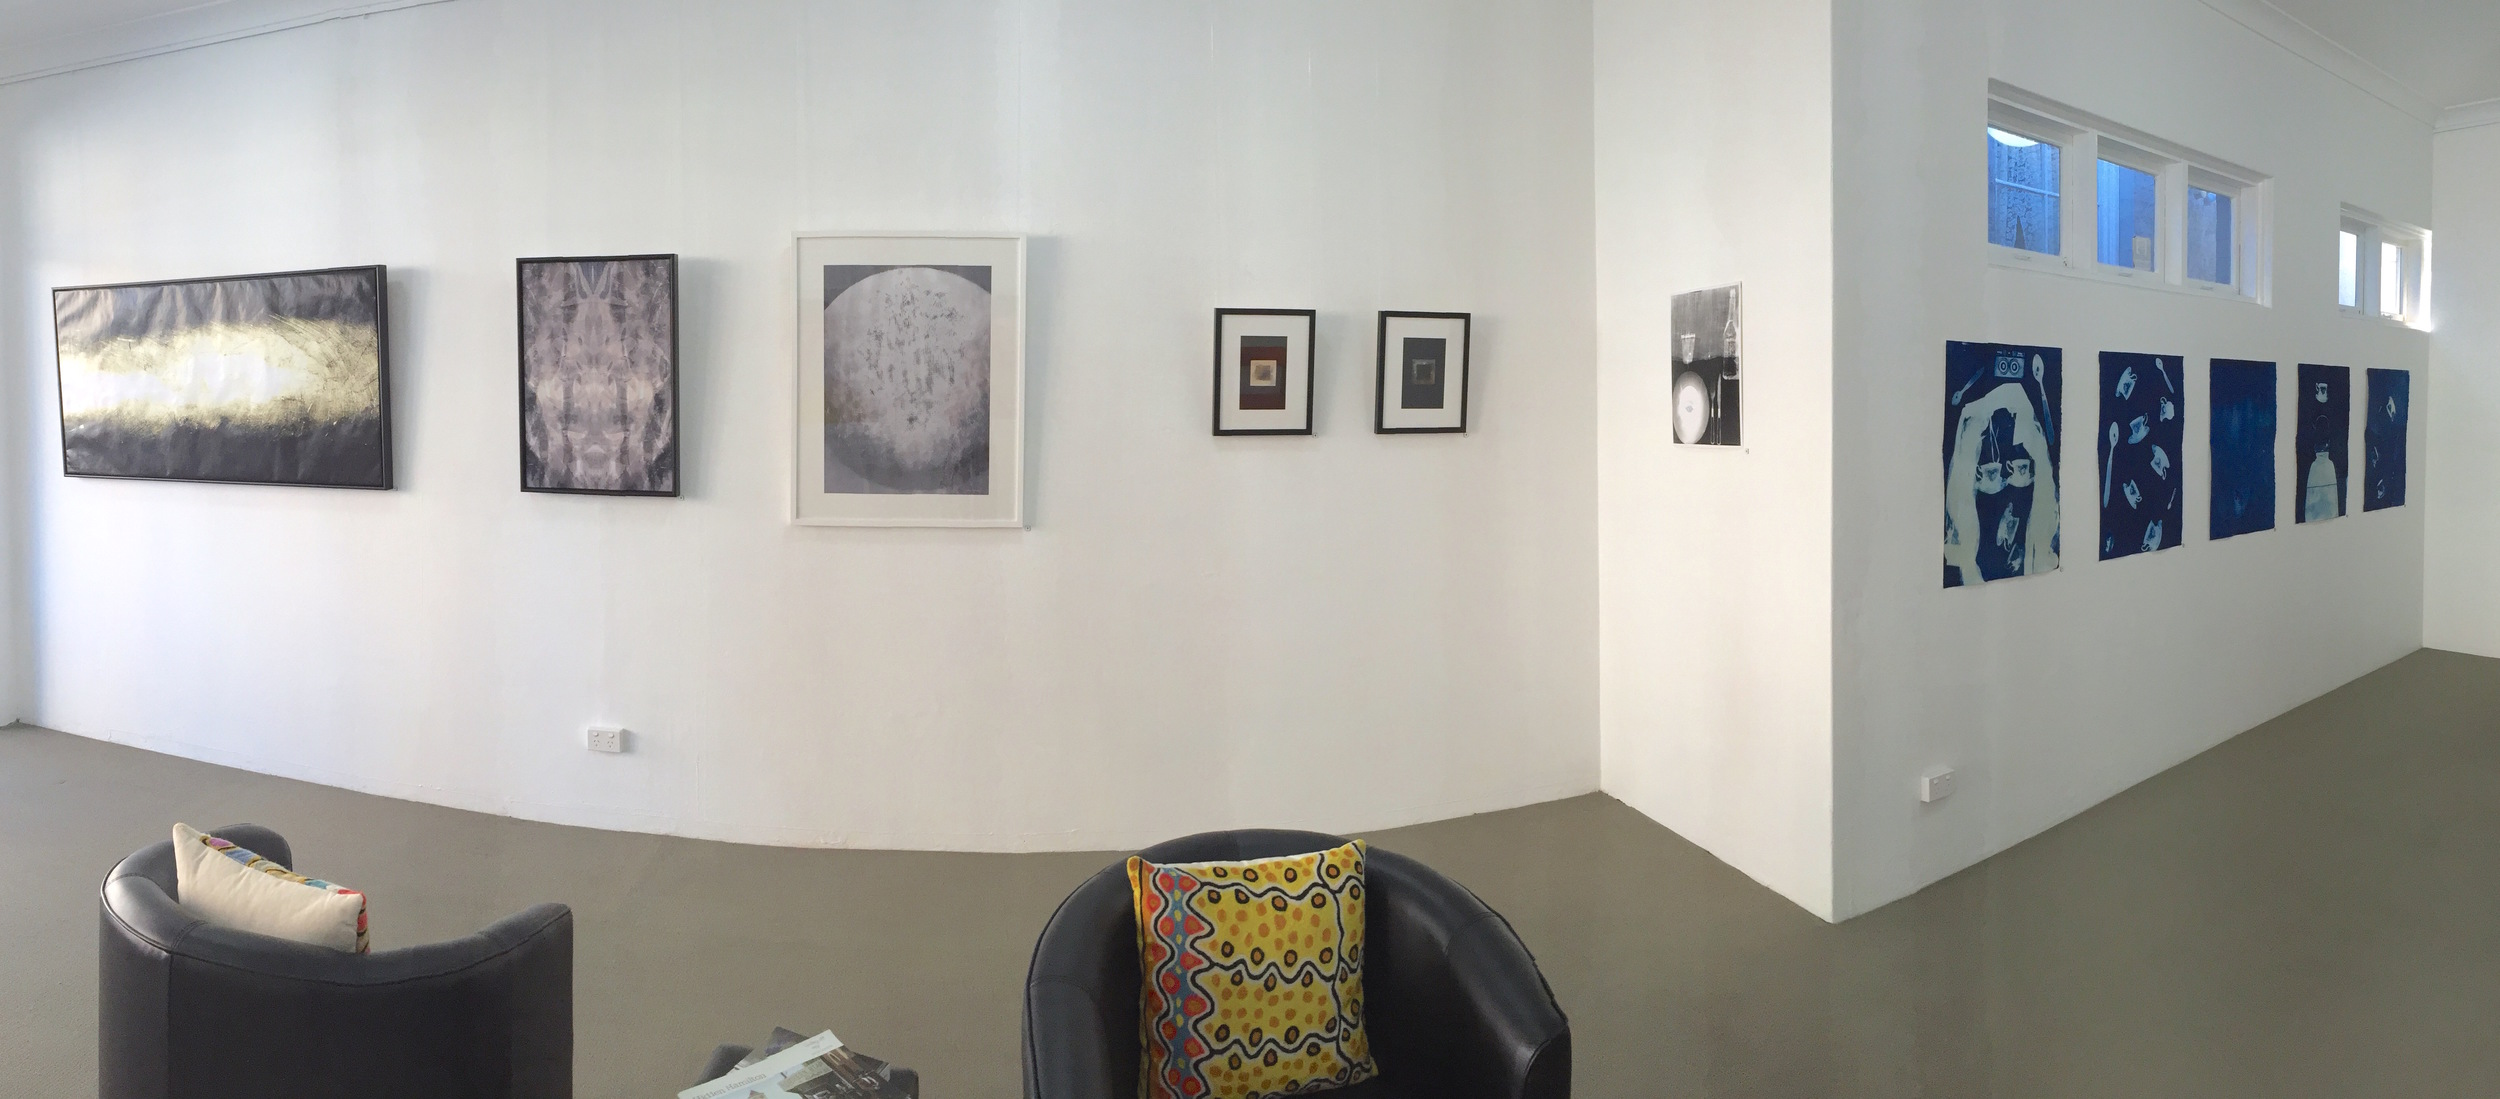 installation view  The Bounds of Photography  March 2016